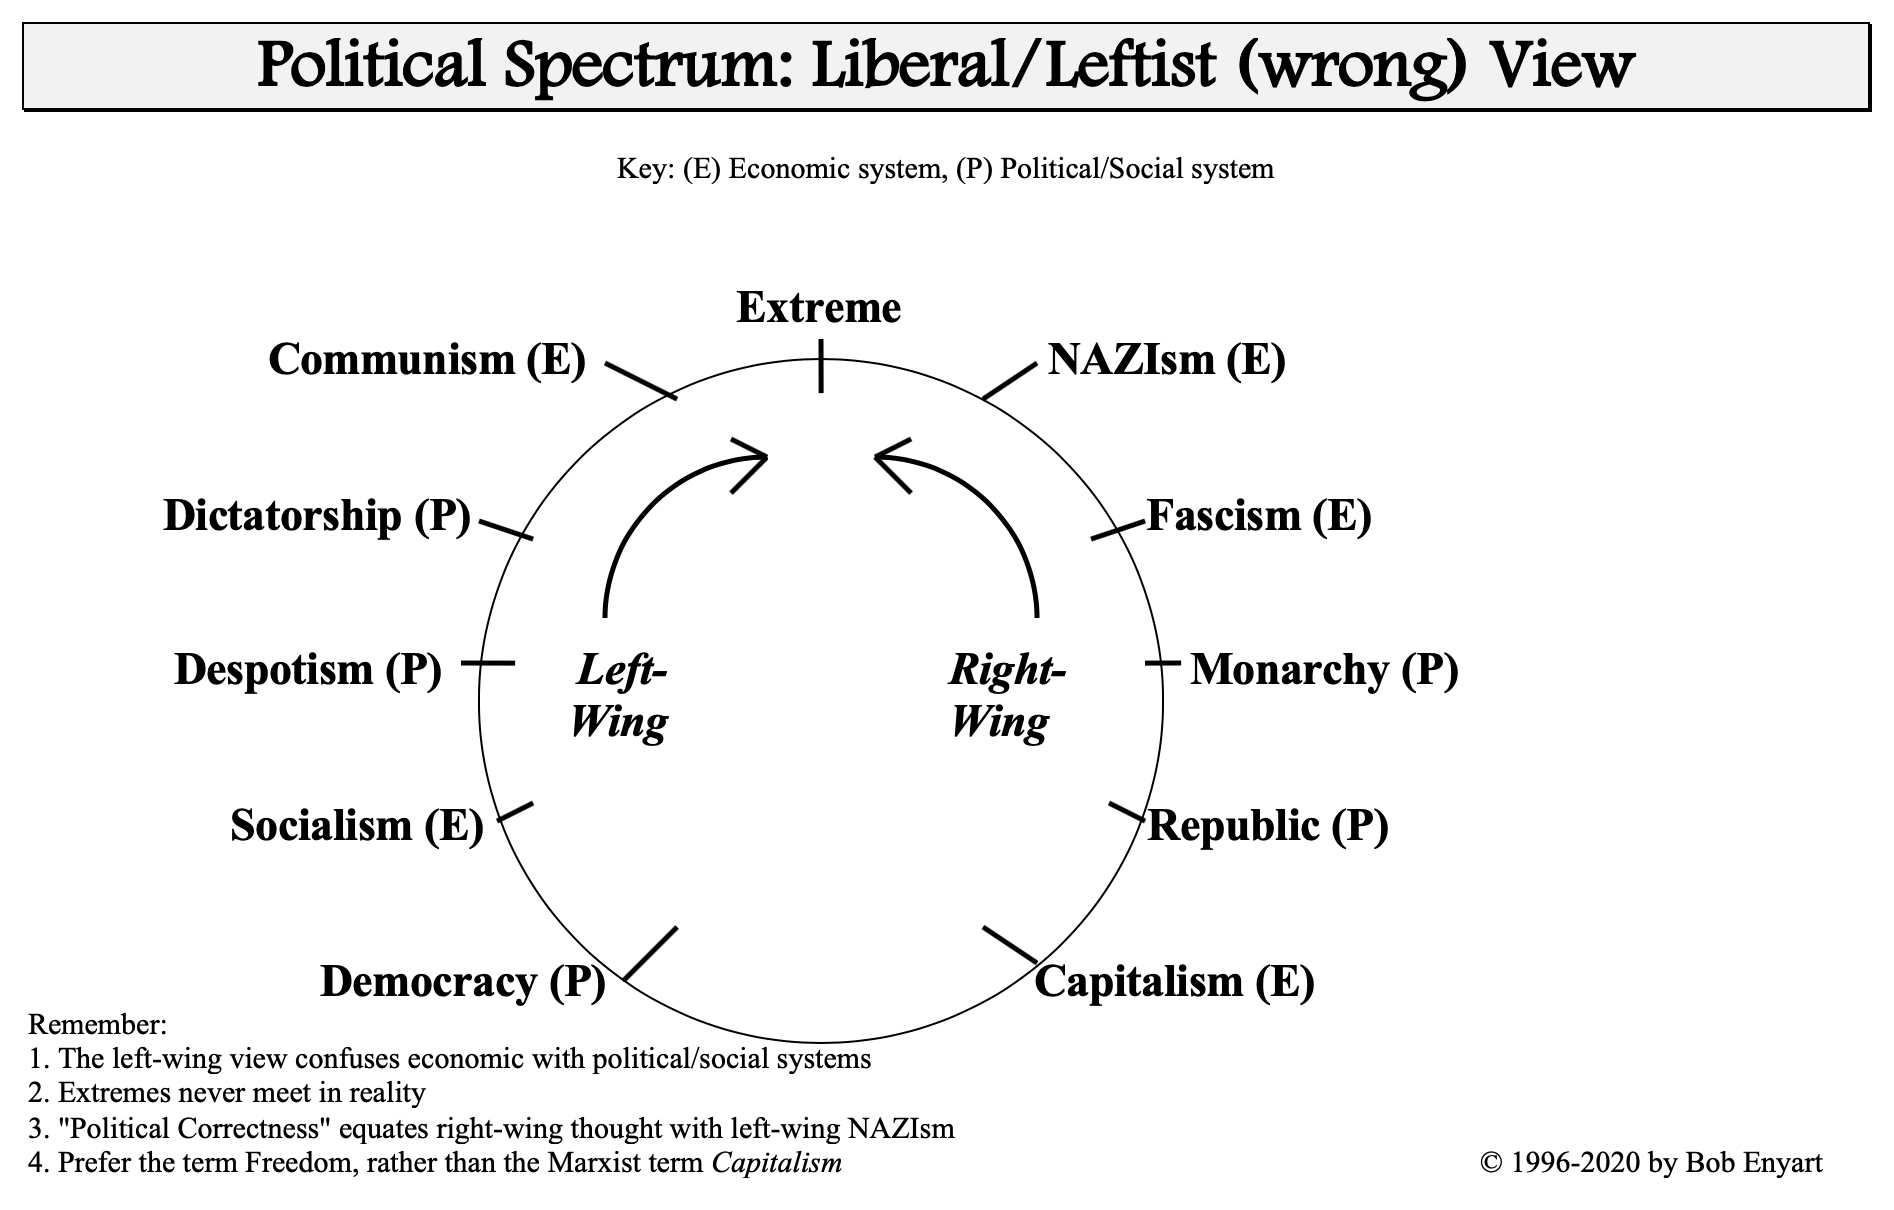 The liberal/left-wing political spectrum chart is wrong